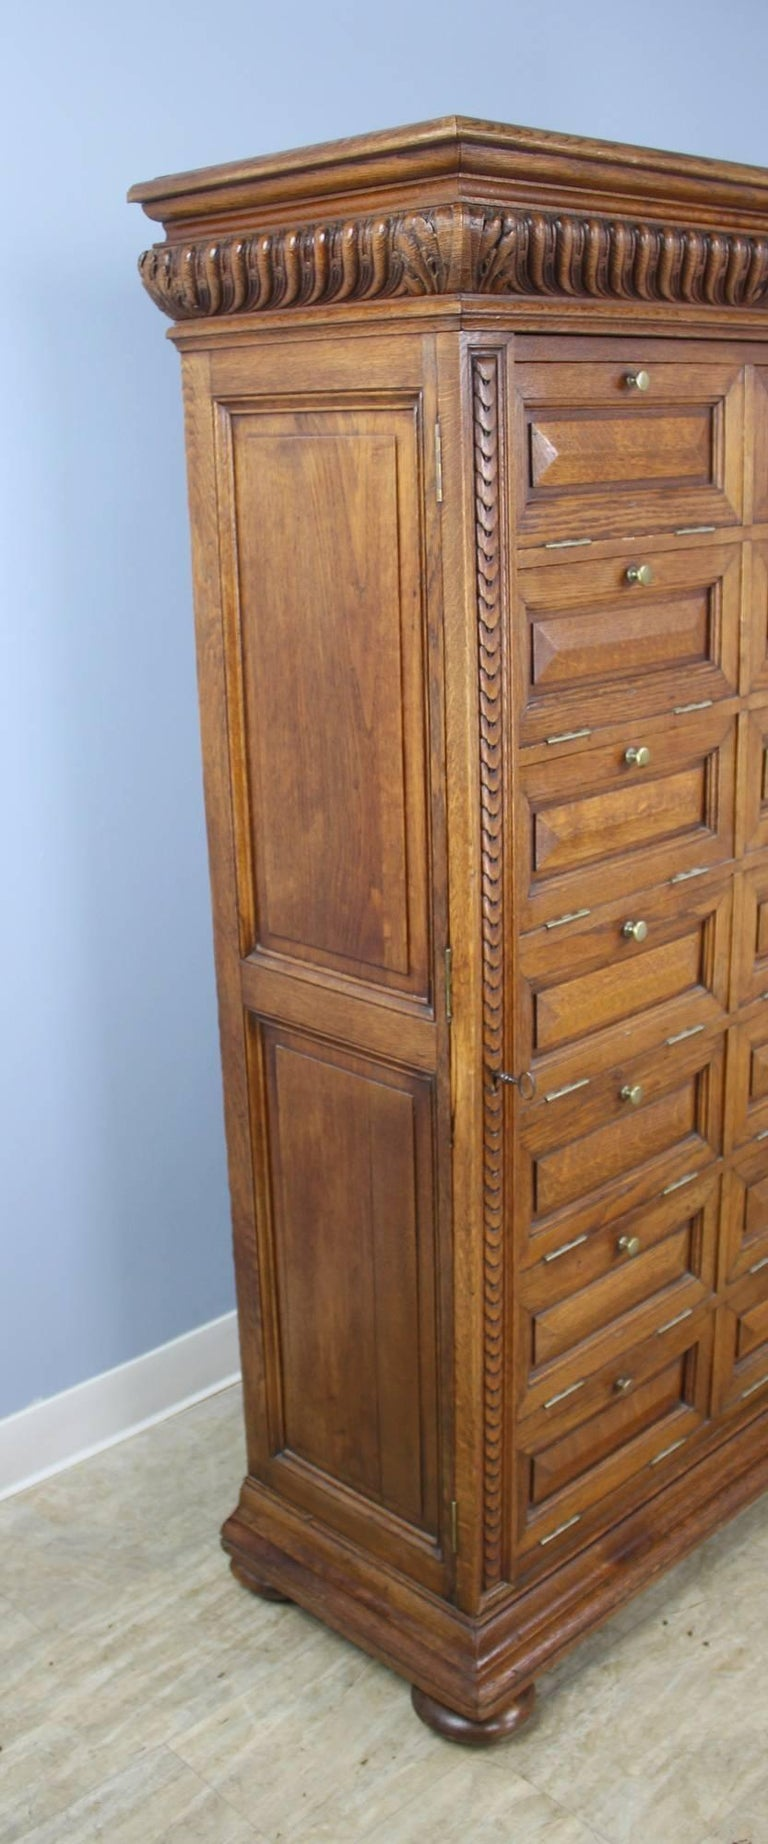 Antique Oak Cabinet with Side Locks and Original Keys For Sale 4 - Antique Oak Cabinet With Side Locks And Original Keys For Sale At